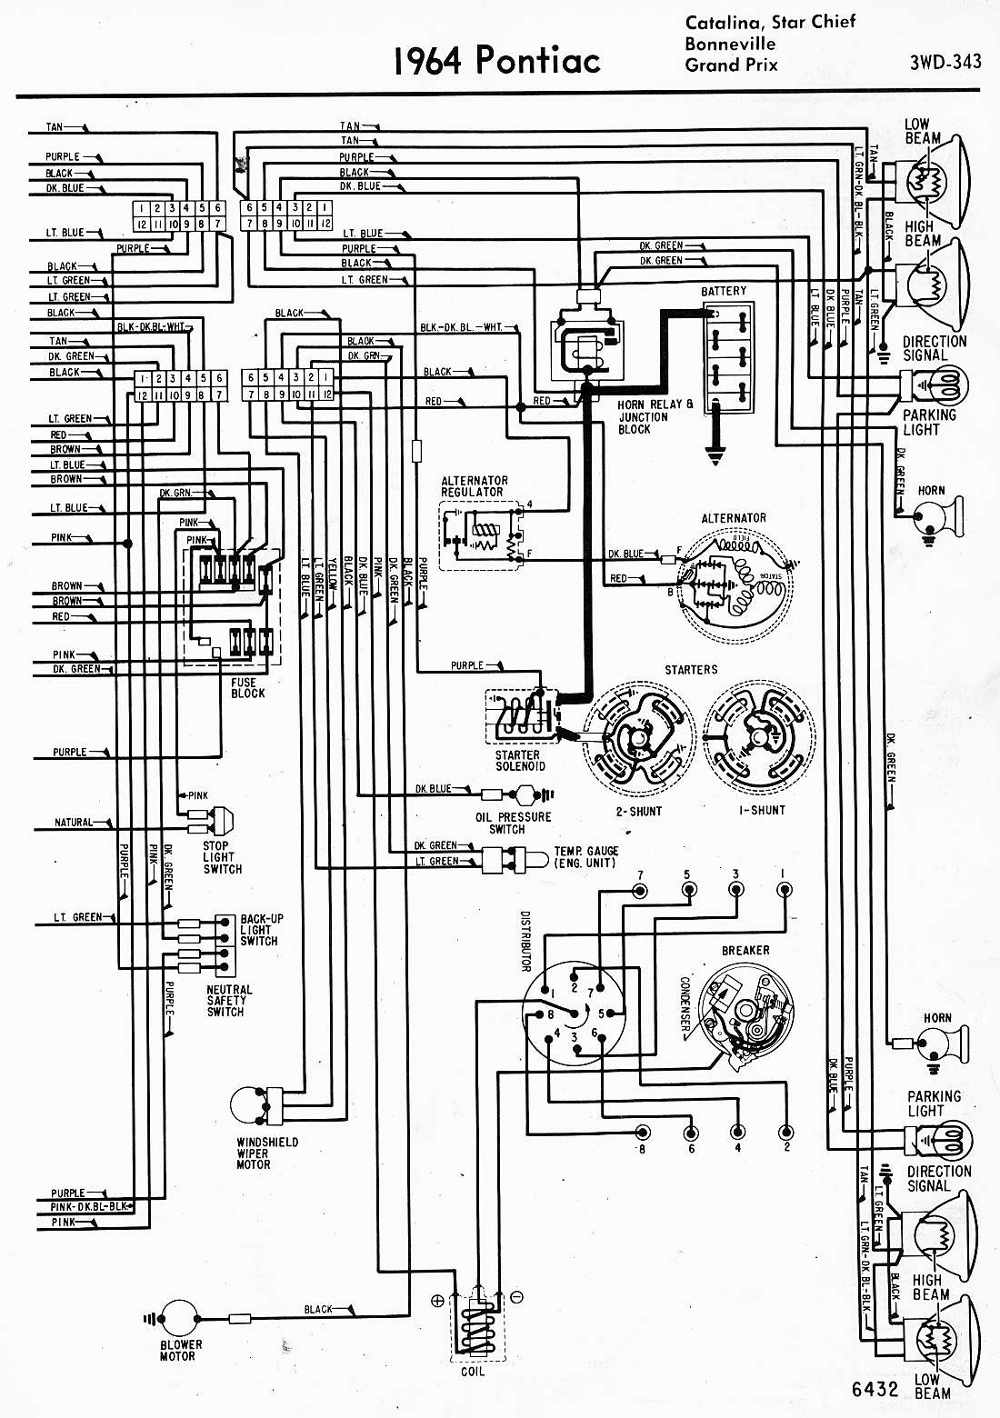 VL_4259] Wiring Diagrams Of 1964 Pontiac Catalina Star Chief Bonneville And Grand  Prix Part 2 Download DiagramInoma Ultr Xeira Mohammedshrine Librar Wiring 101